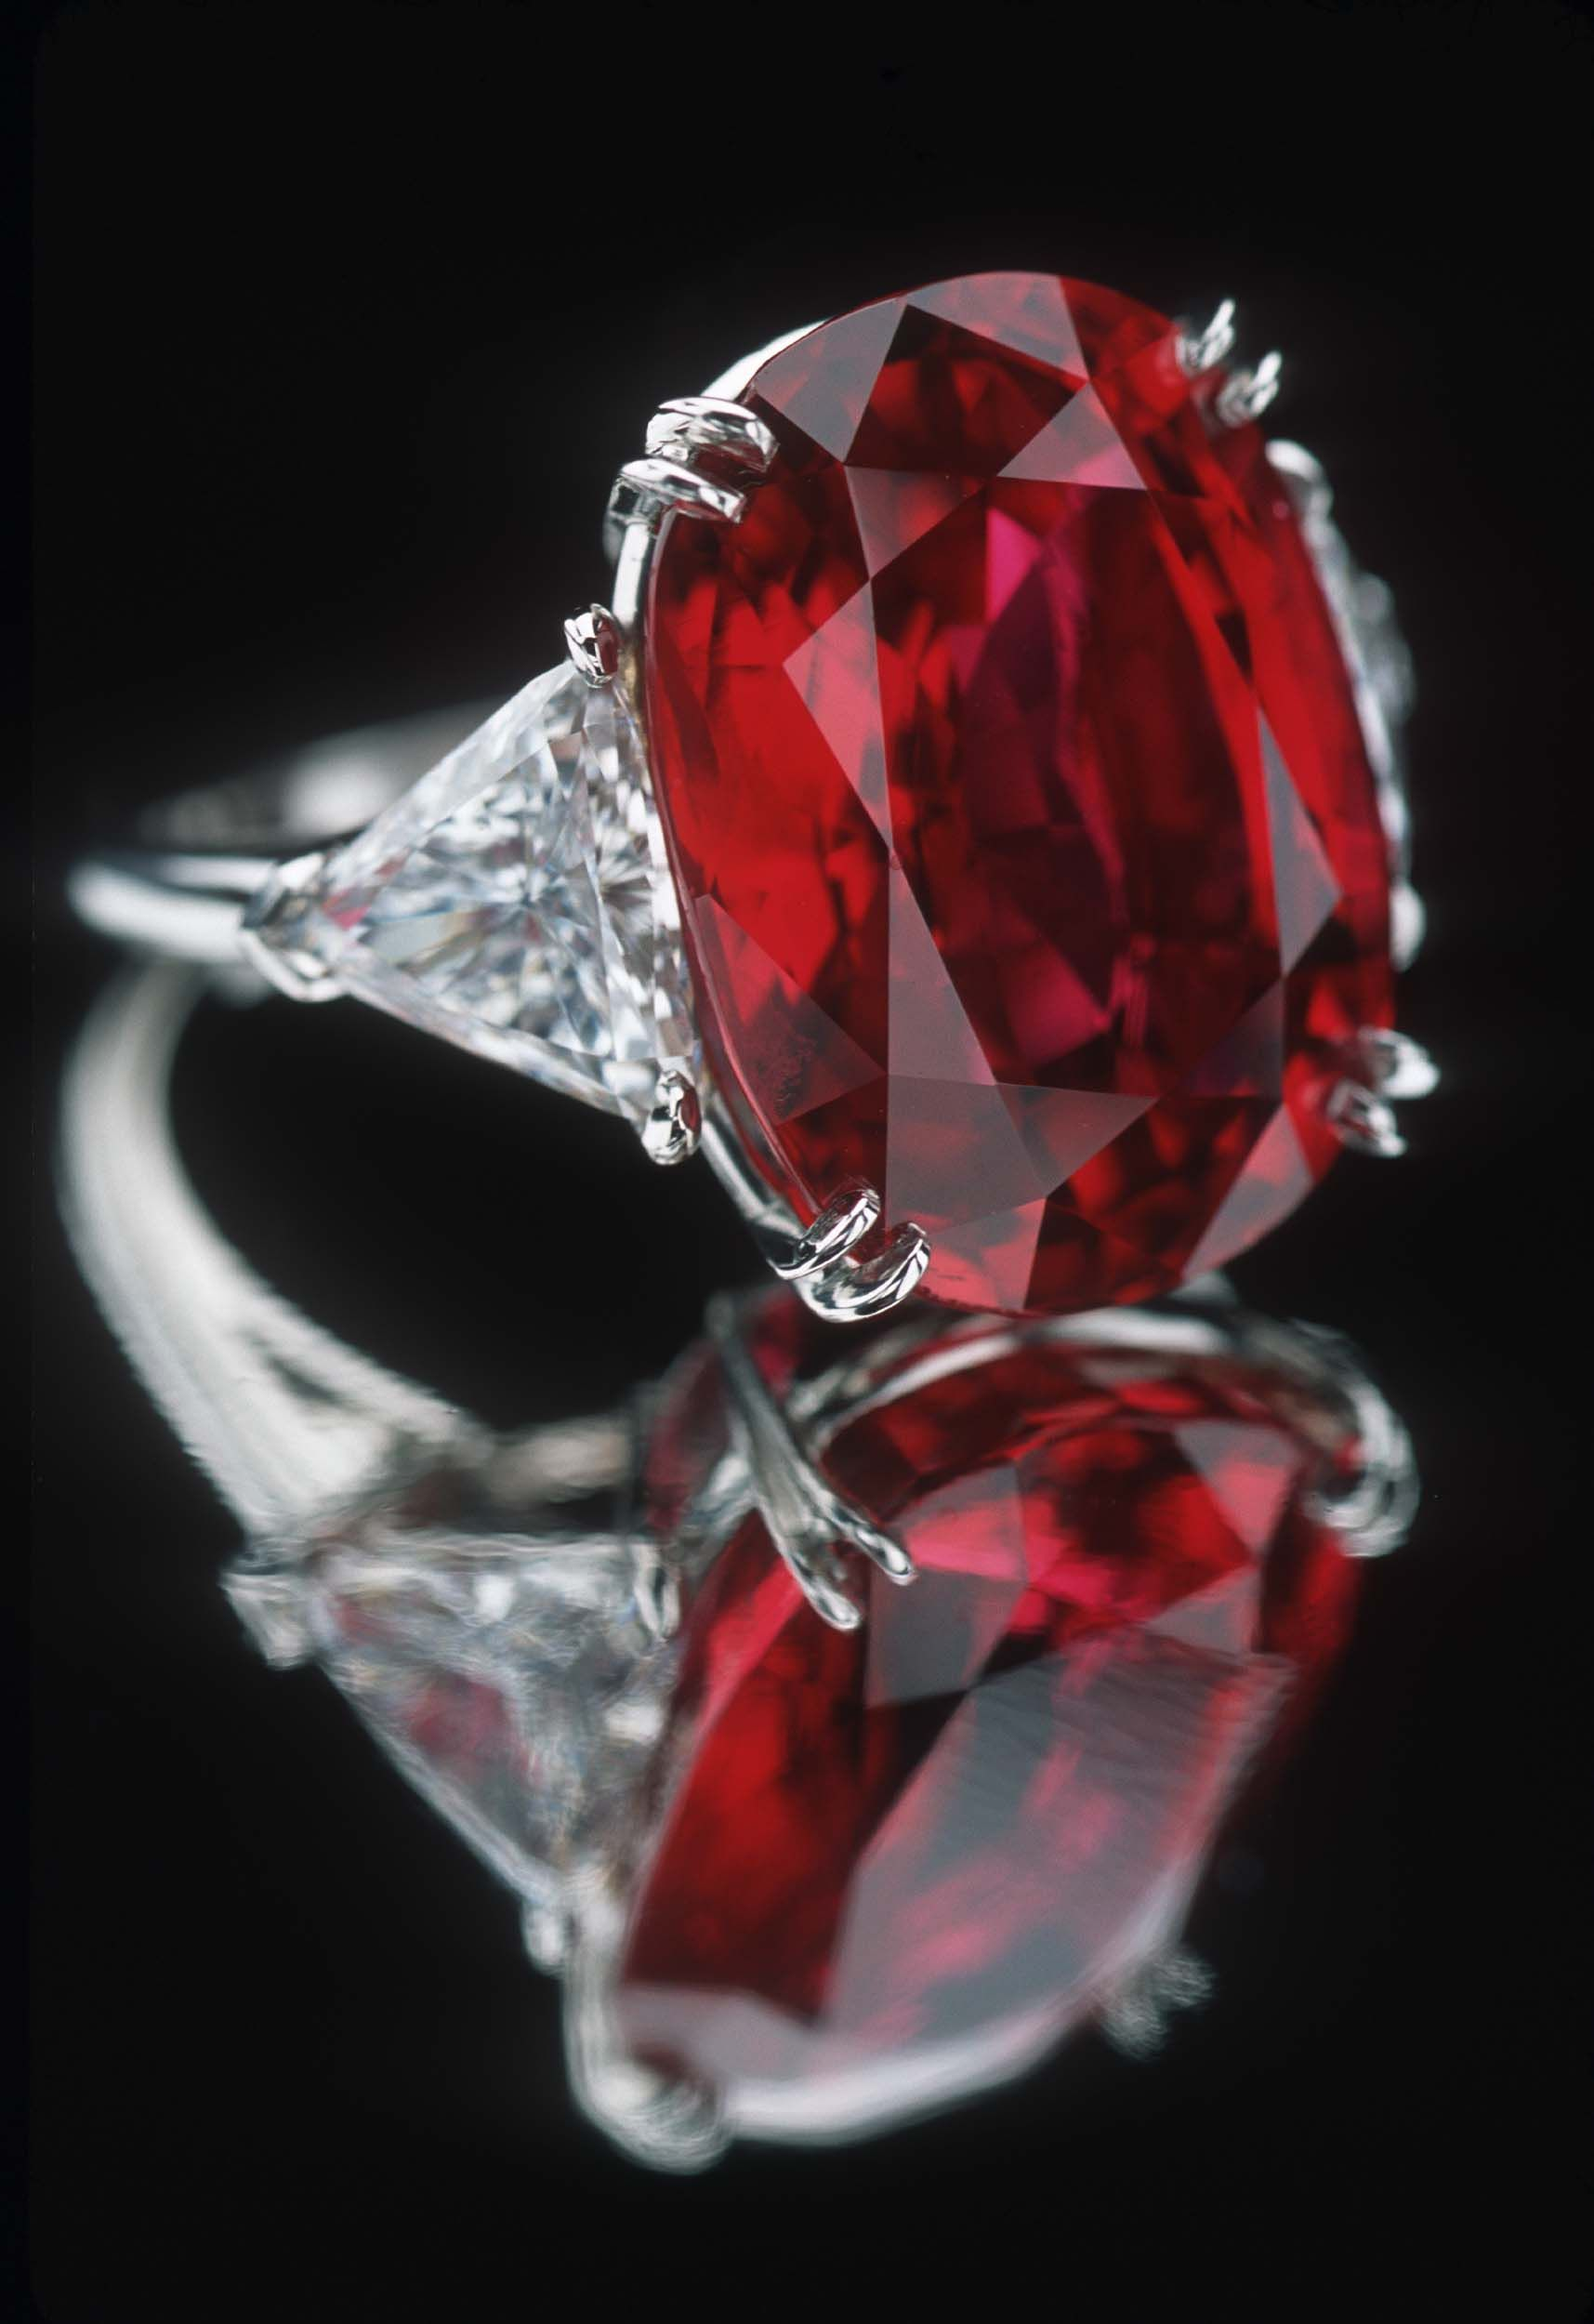 The carat carmen lucia burmese ruby on display at the